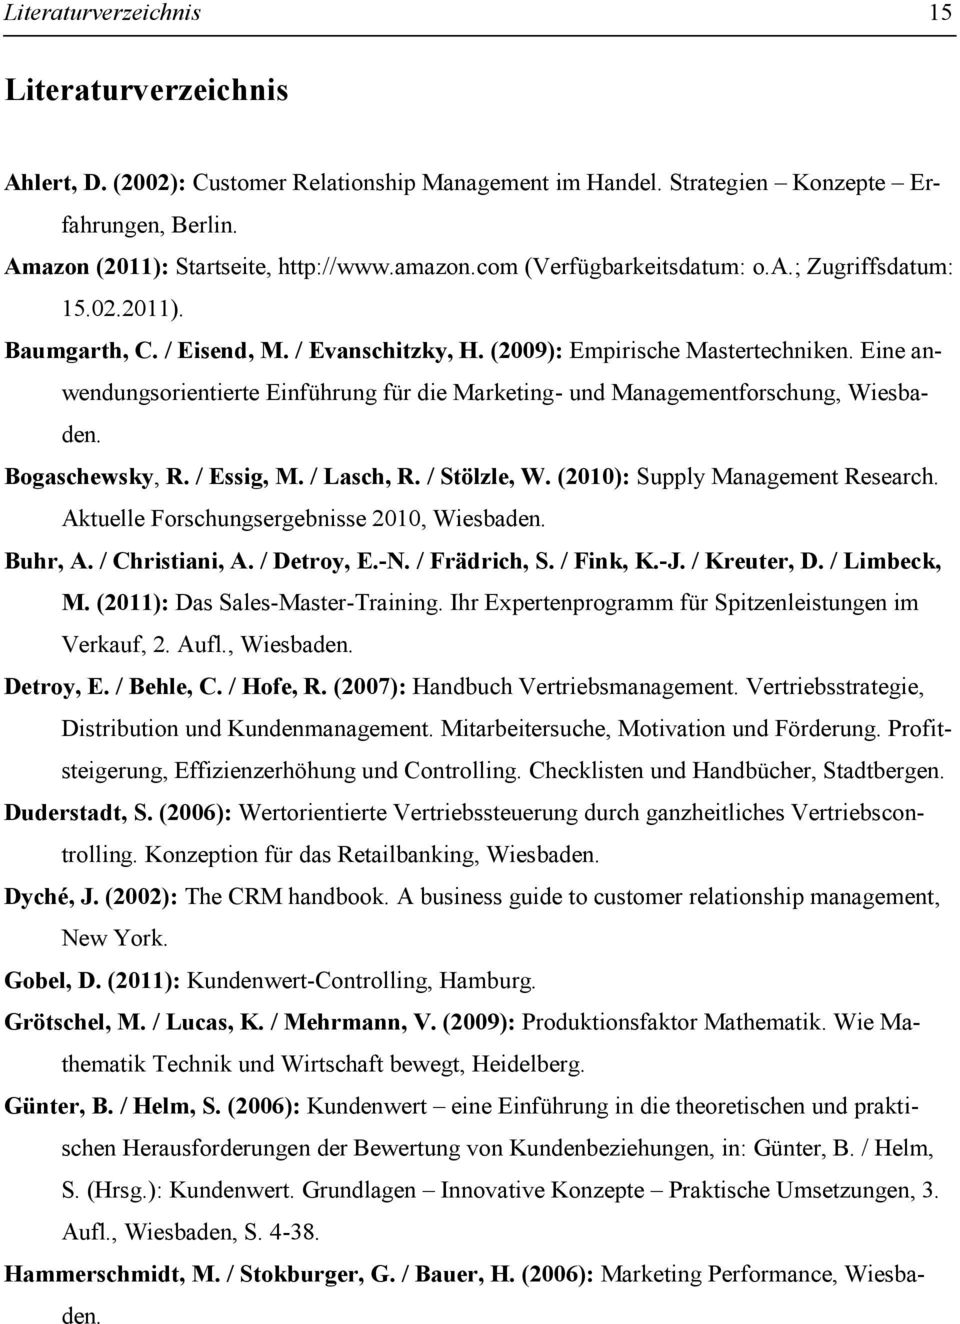 Eine anwendungsorientierte Einführung für die Marketing- und Managementforschung, Wiesbaden. Bogaschewsky, R. / Essig, M. / Lasch, R. / Stölzle, W. (2010): Supply Management Research.